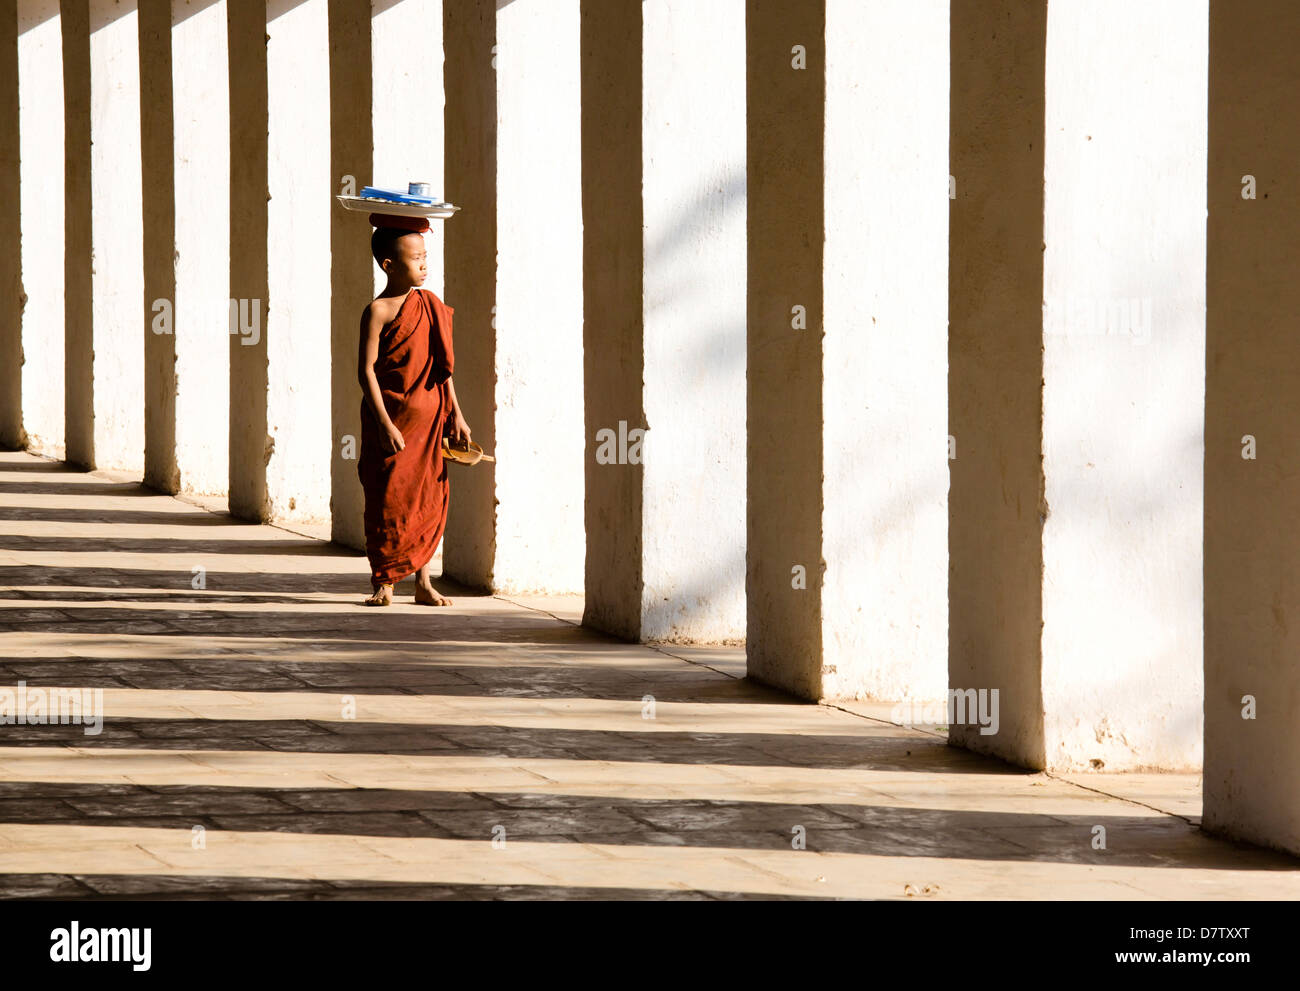 Novice Buddhist monk standing in the shadows of columns at Shwezigon Paya, Nyaung U, Bagan, Burma Stock Photo